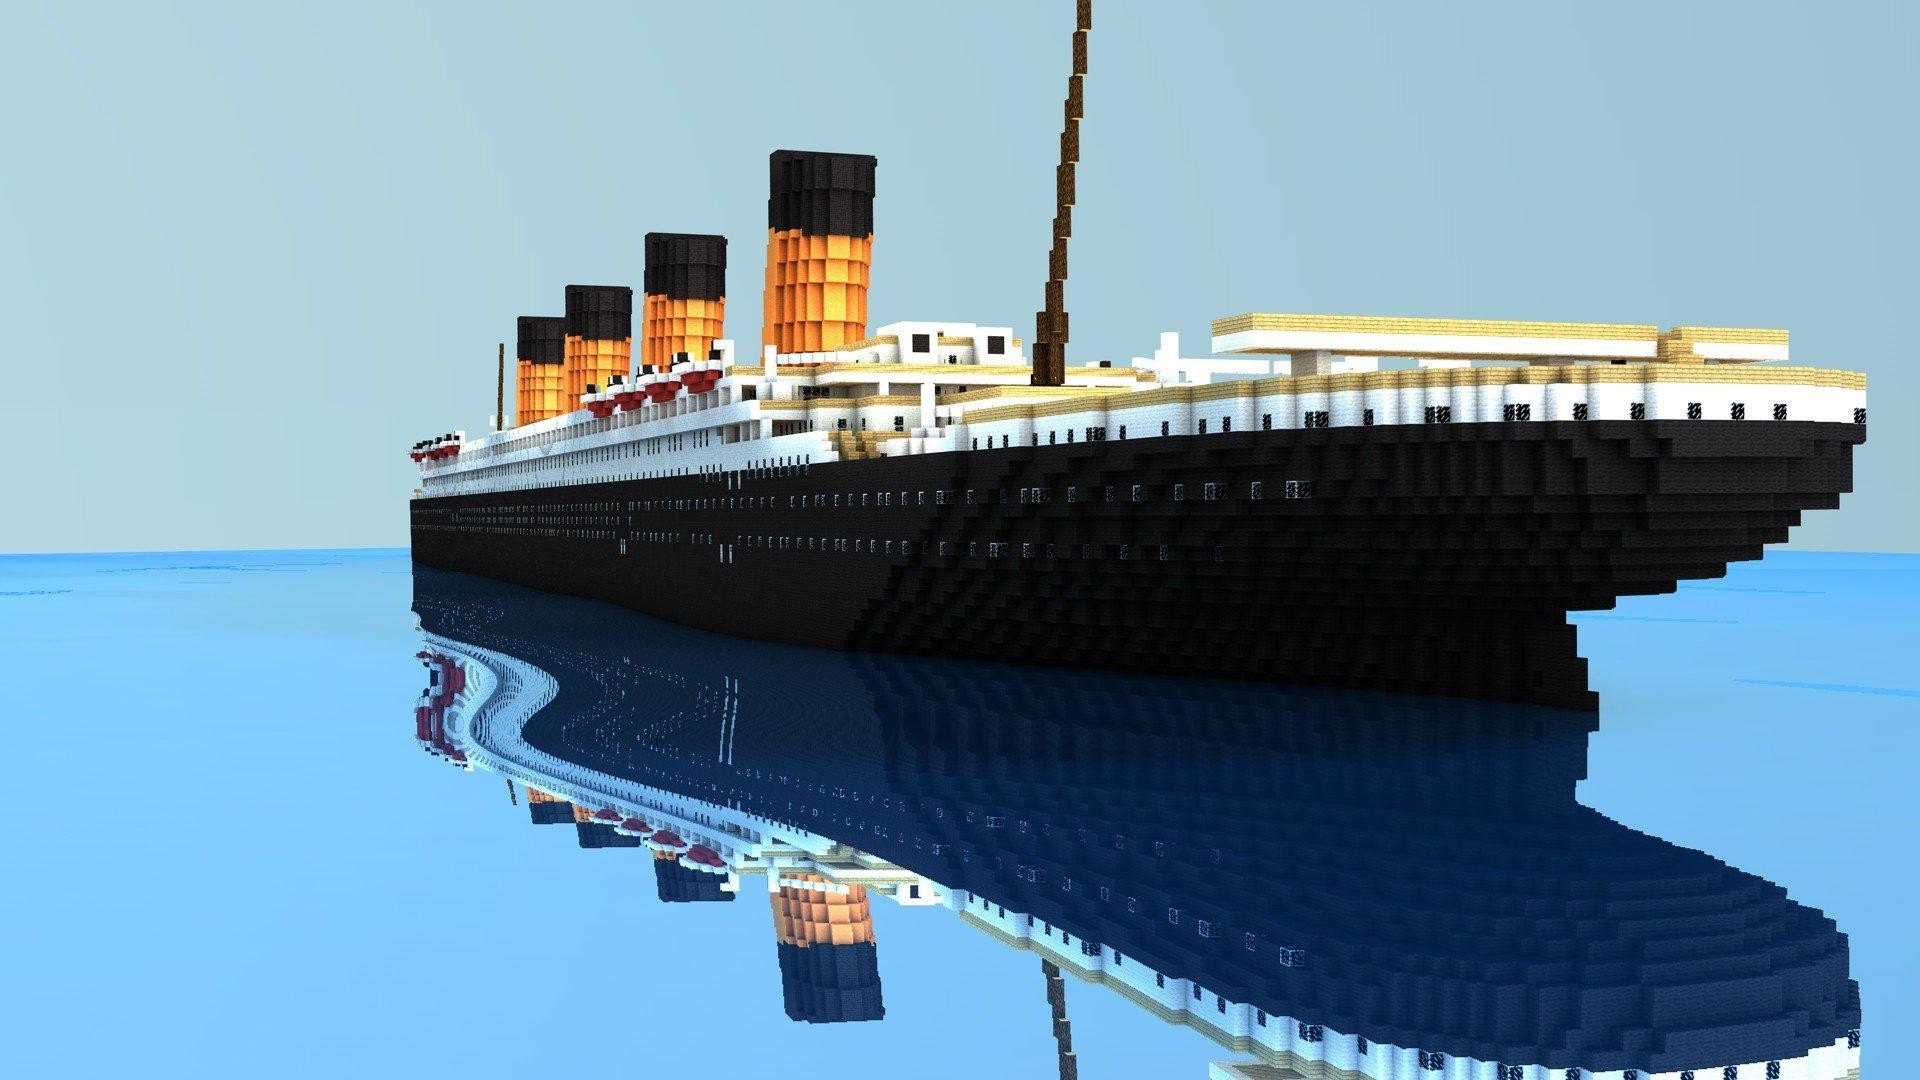 1920x1080 Ocean Old Titanic Minecraft Realistic, Lb Photo Realism, Minecraft Lb  Photo, Photo Realism Minecraft, Games, Wallpaper Of Minecraft, Minecraft Hd  Wallpaper, ...